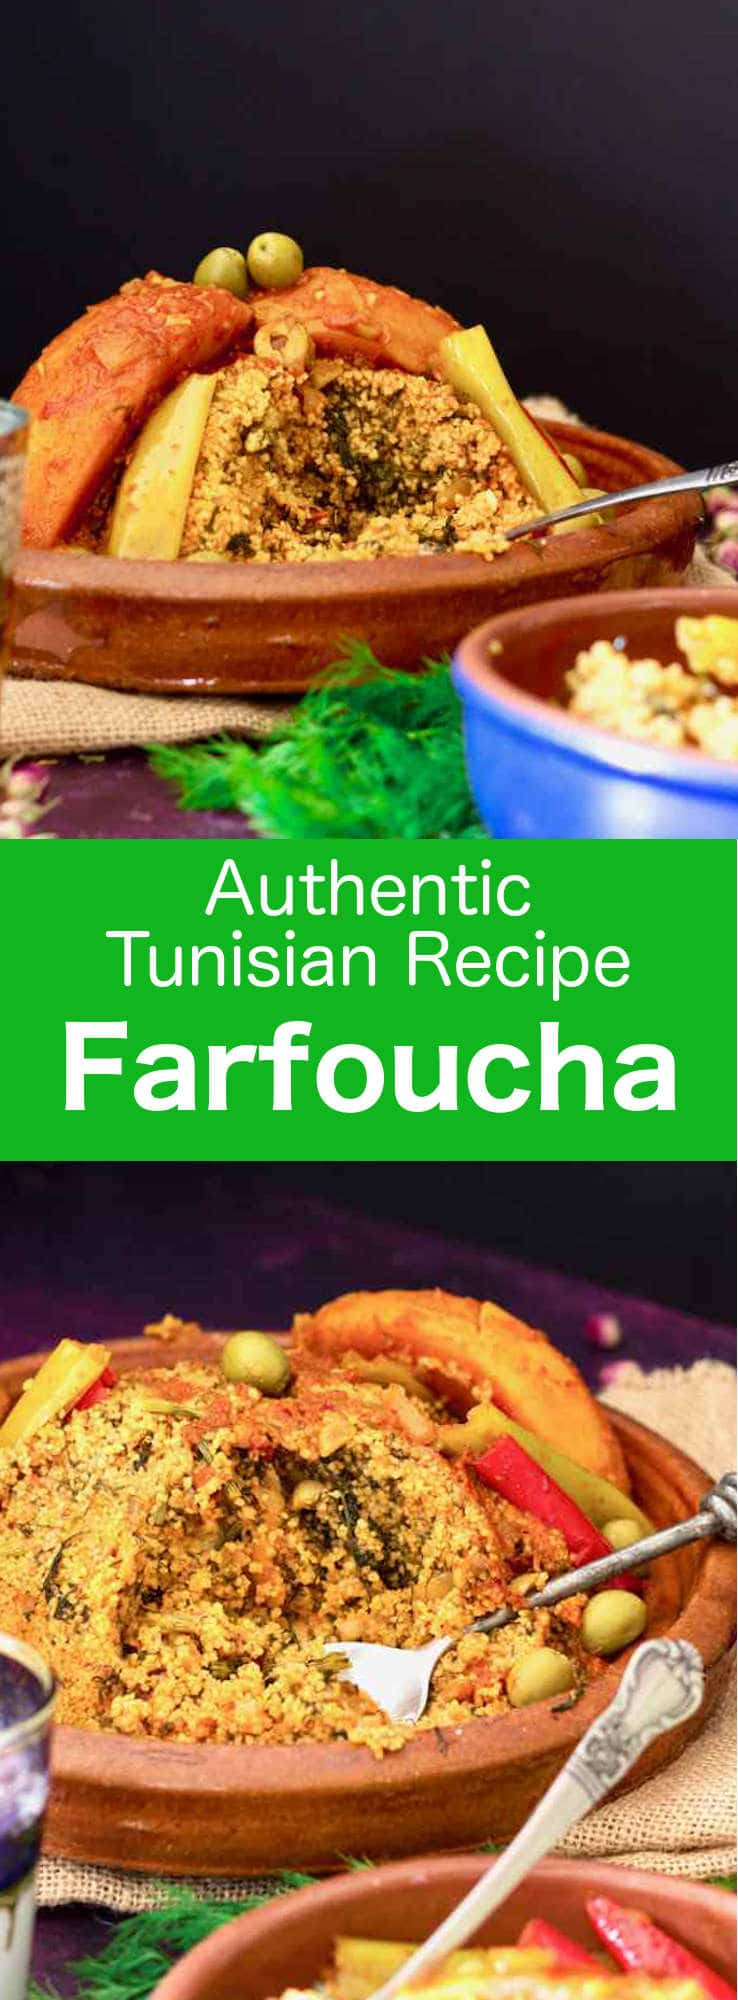 Tunisian farfoucha is a deliciously hearty dish of fragrant steamed couscous and fennel leaves with a rich and spicy tomato-based vegetable stew. #Tunisia #Tunisian #TunisianCuisine #TunisianRecipe #NorthAfricanCuisine #NorthAfricanRecipe #NorthAfrica #Maghreb #MaghrebCuisine #Couscous #Vegan #Vegetarian #WorldCuisine #196flavors